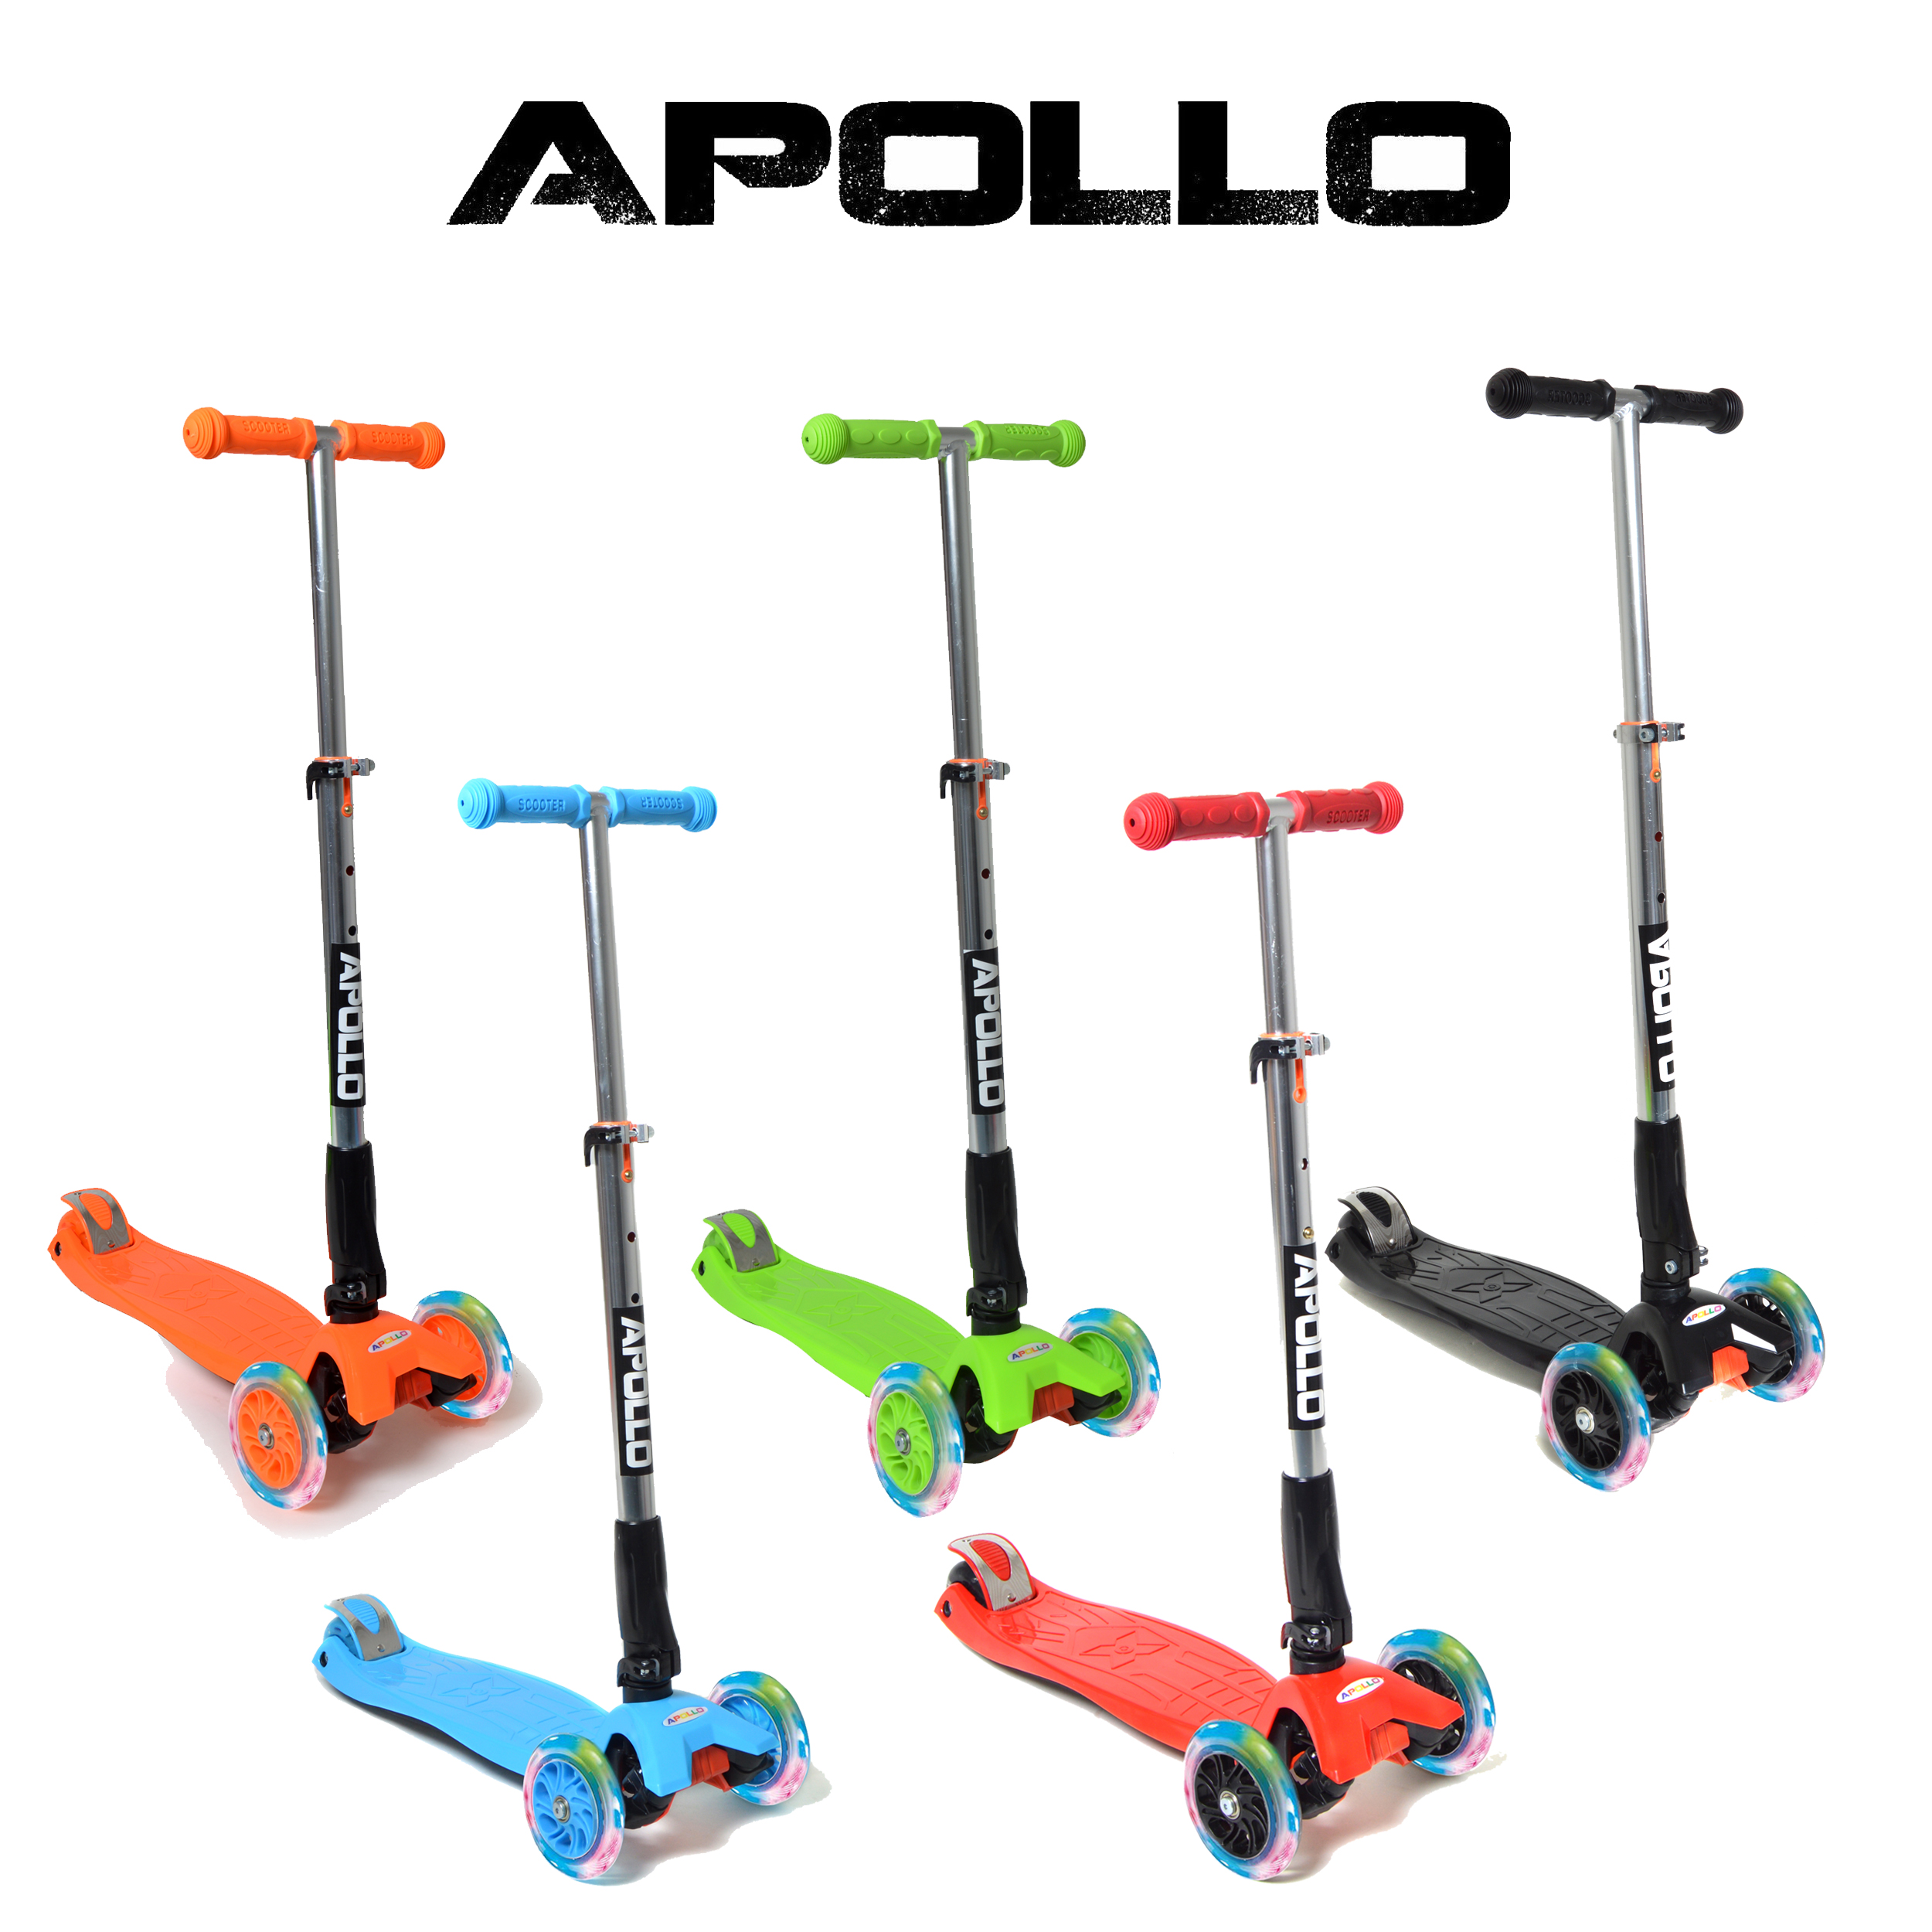 apollo kids go led fun scooter tretroller f r kinder ab. Black Bedroom Furniture Sets. Home Design Ideas